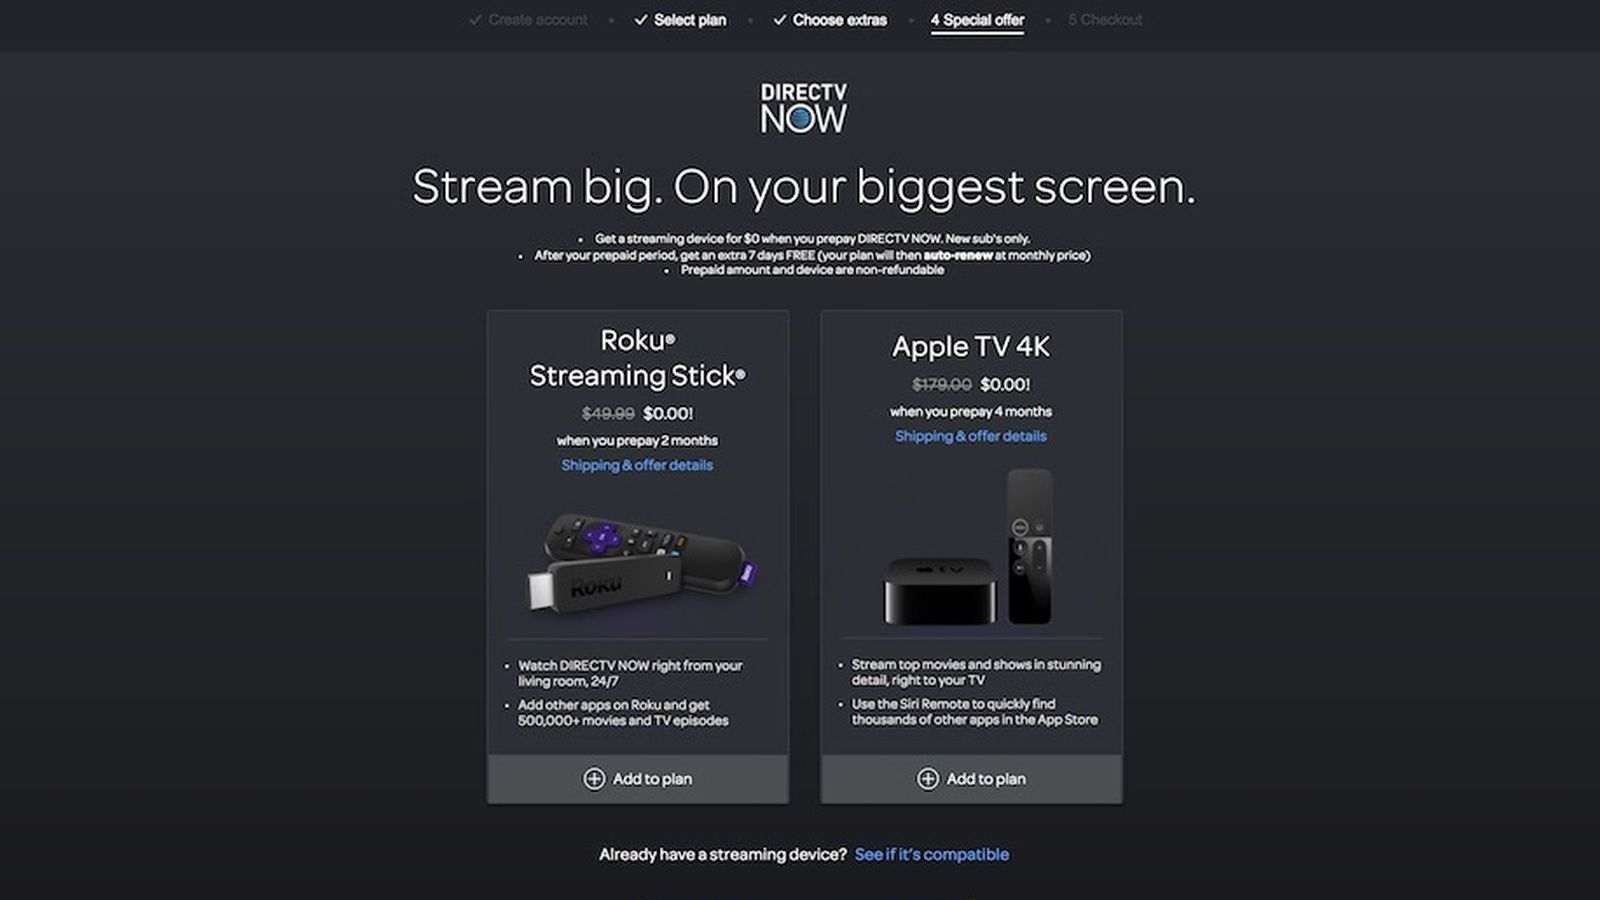 Directv Now Offering 32gb Apple Tv 4k At No Cost When Signing Up For 4 Month Service At 140 Updated Macrumors